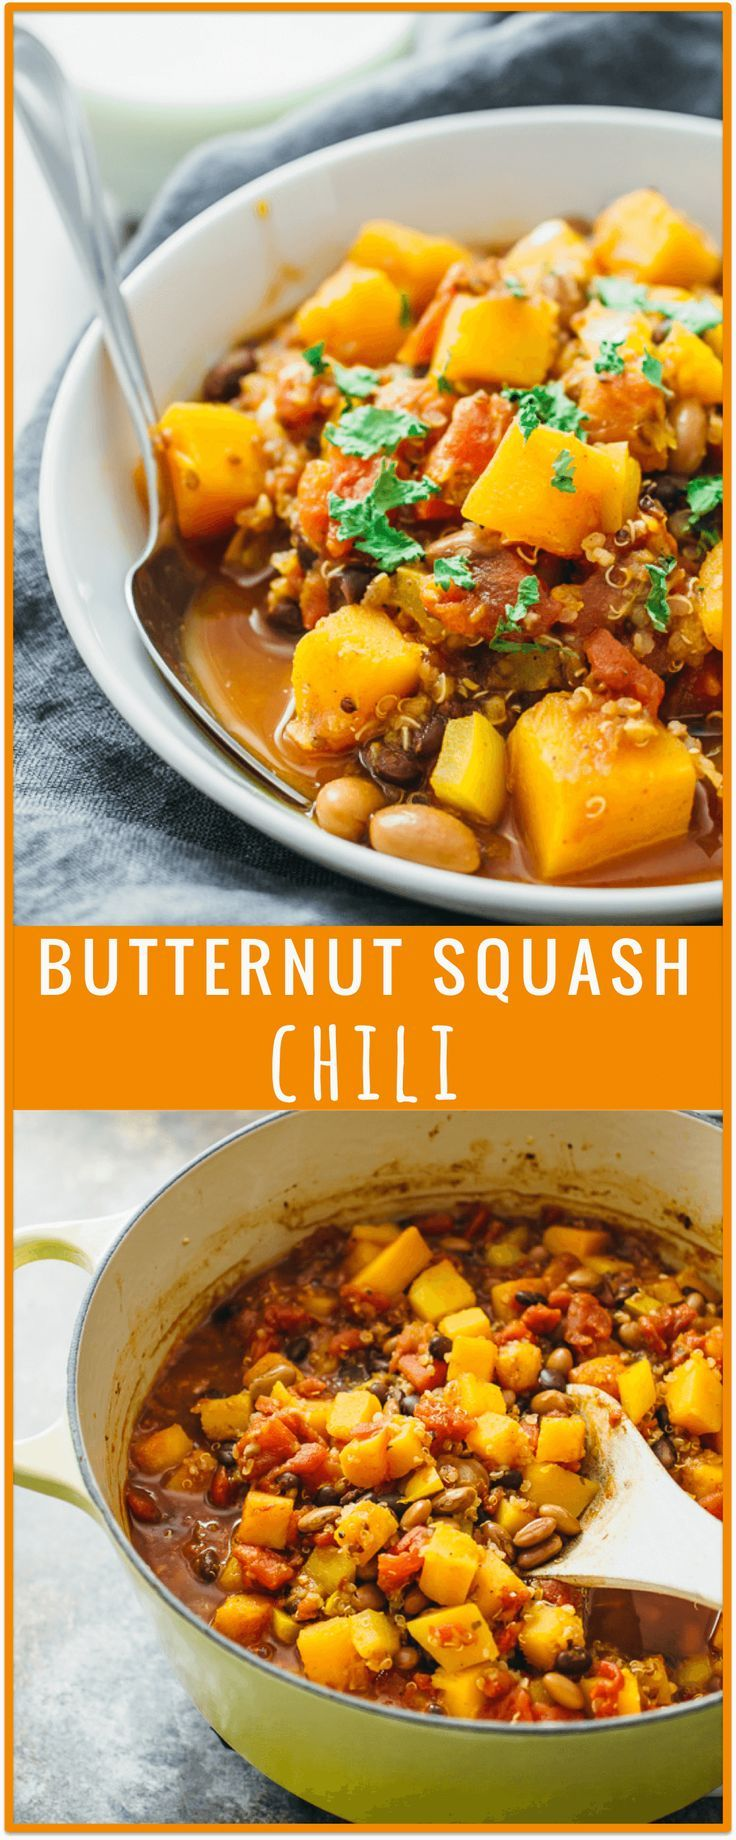 Butternut squash chili - This butternut squash chili is one of my favorite chili recipes! It's easy and fast (cooks in 30 minutes on the stove), and it's a great way to incorporate fall favorites like butternut squash into your diet. This vegetarian / vegan dish is also healthy and includes quinoa, black and pinto beans, and peppers. - http://savorytooth.com